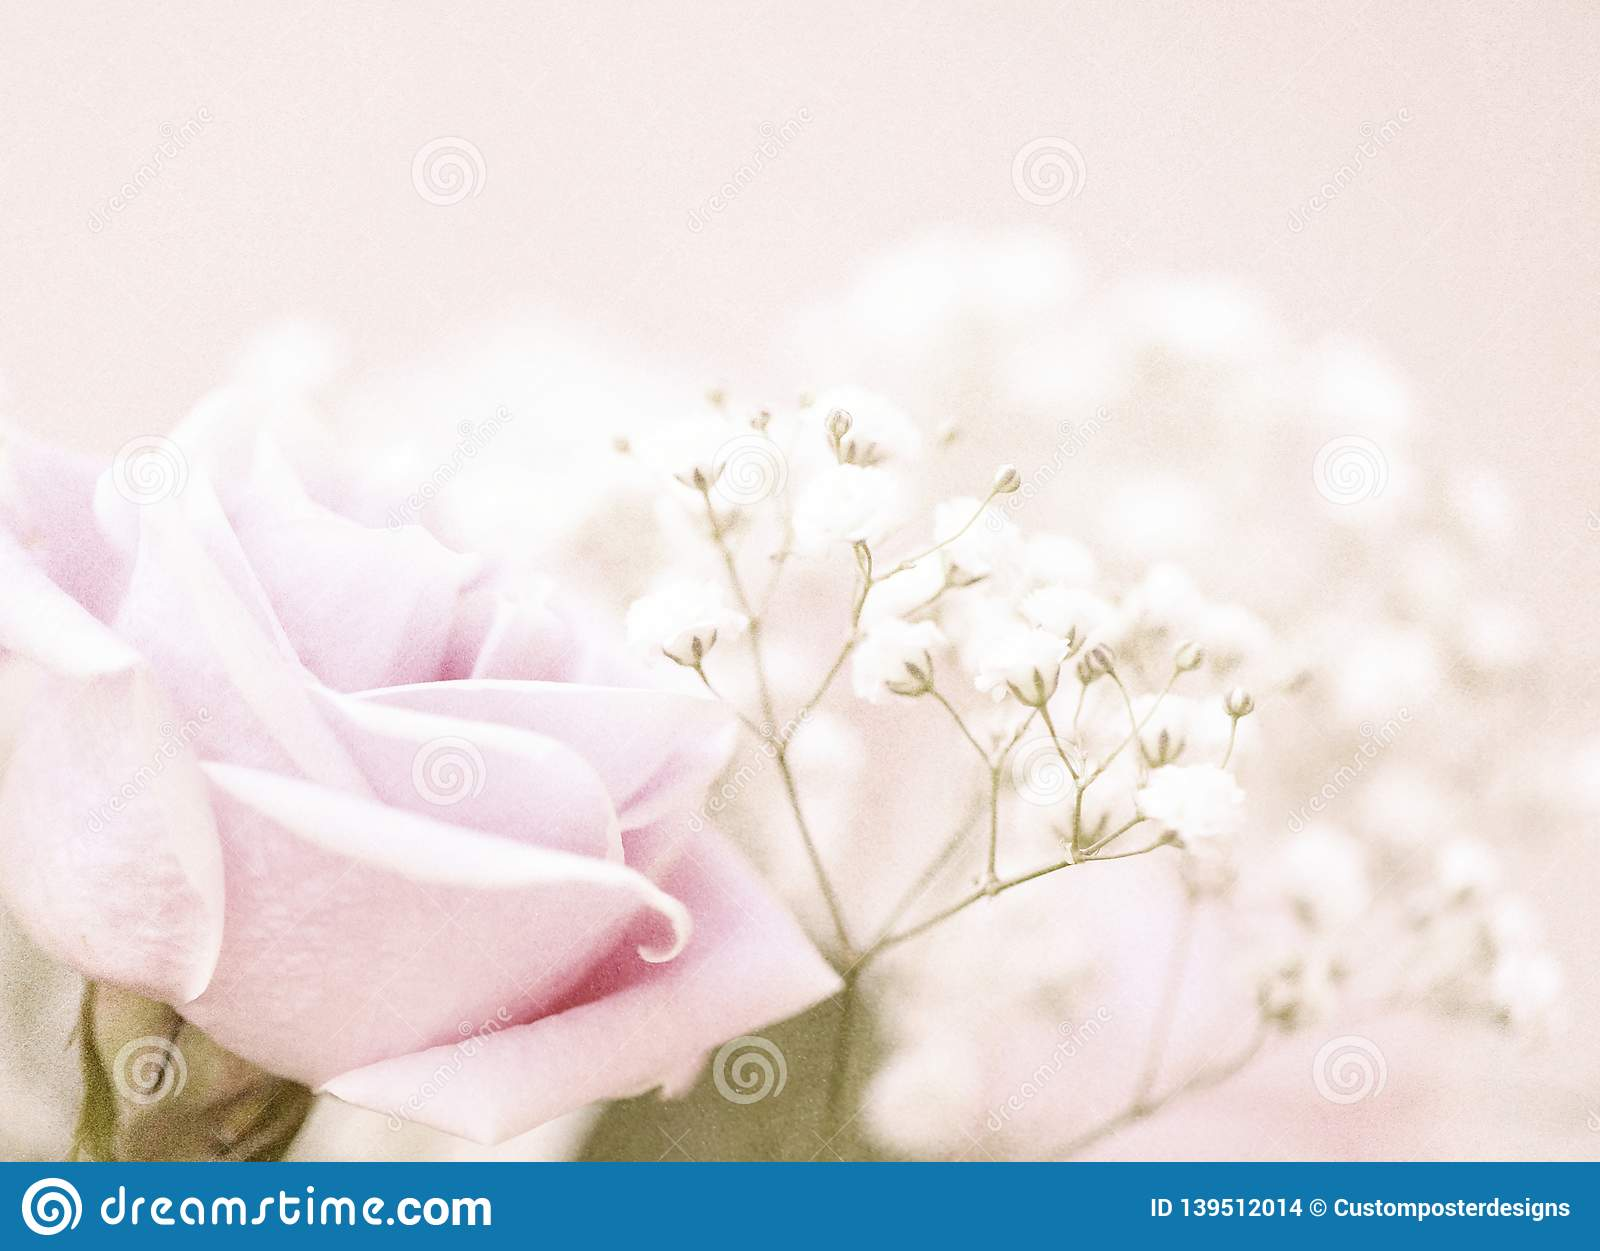 A beautiful pink rose with baby`s breath in the background.